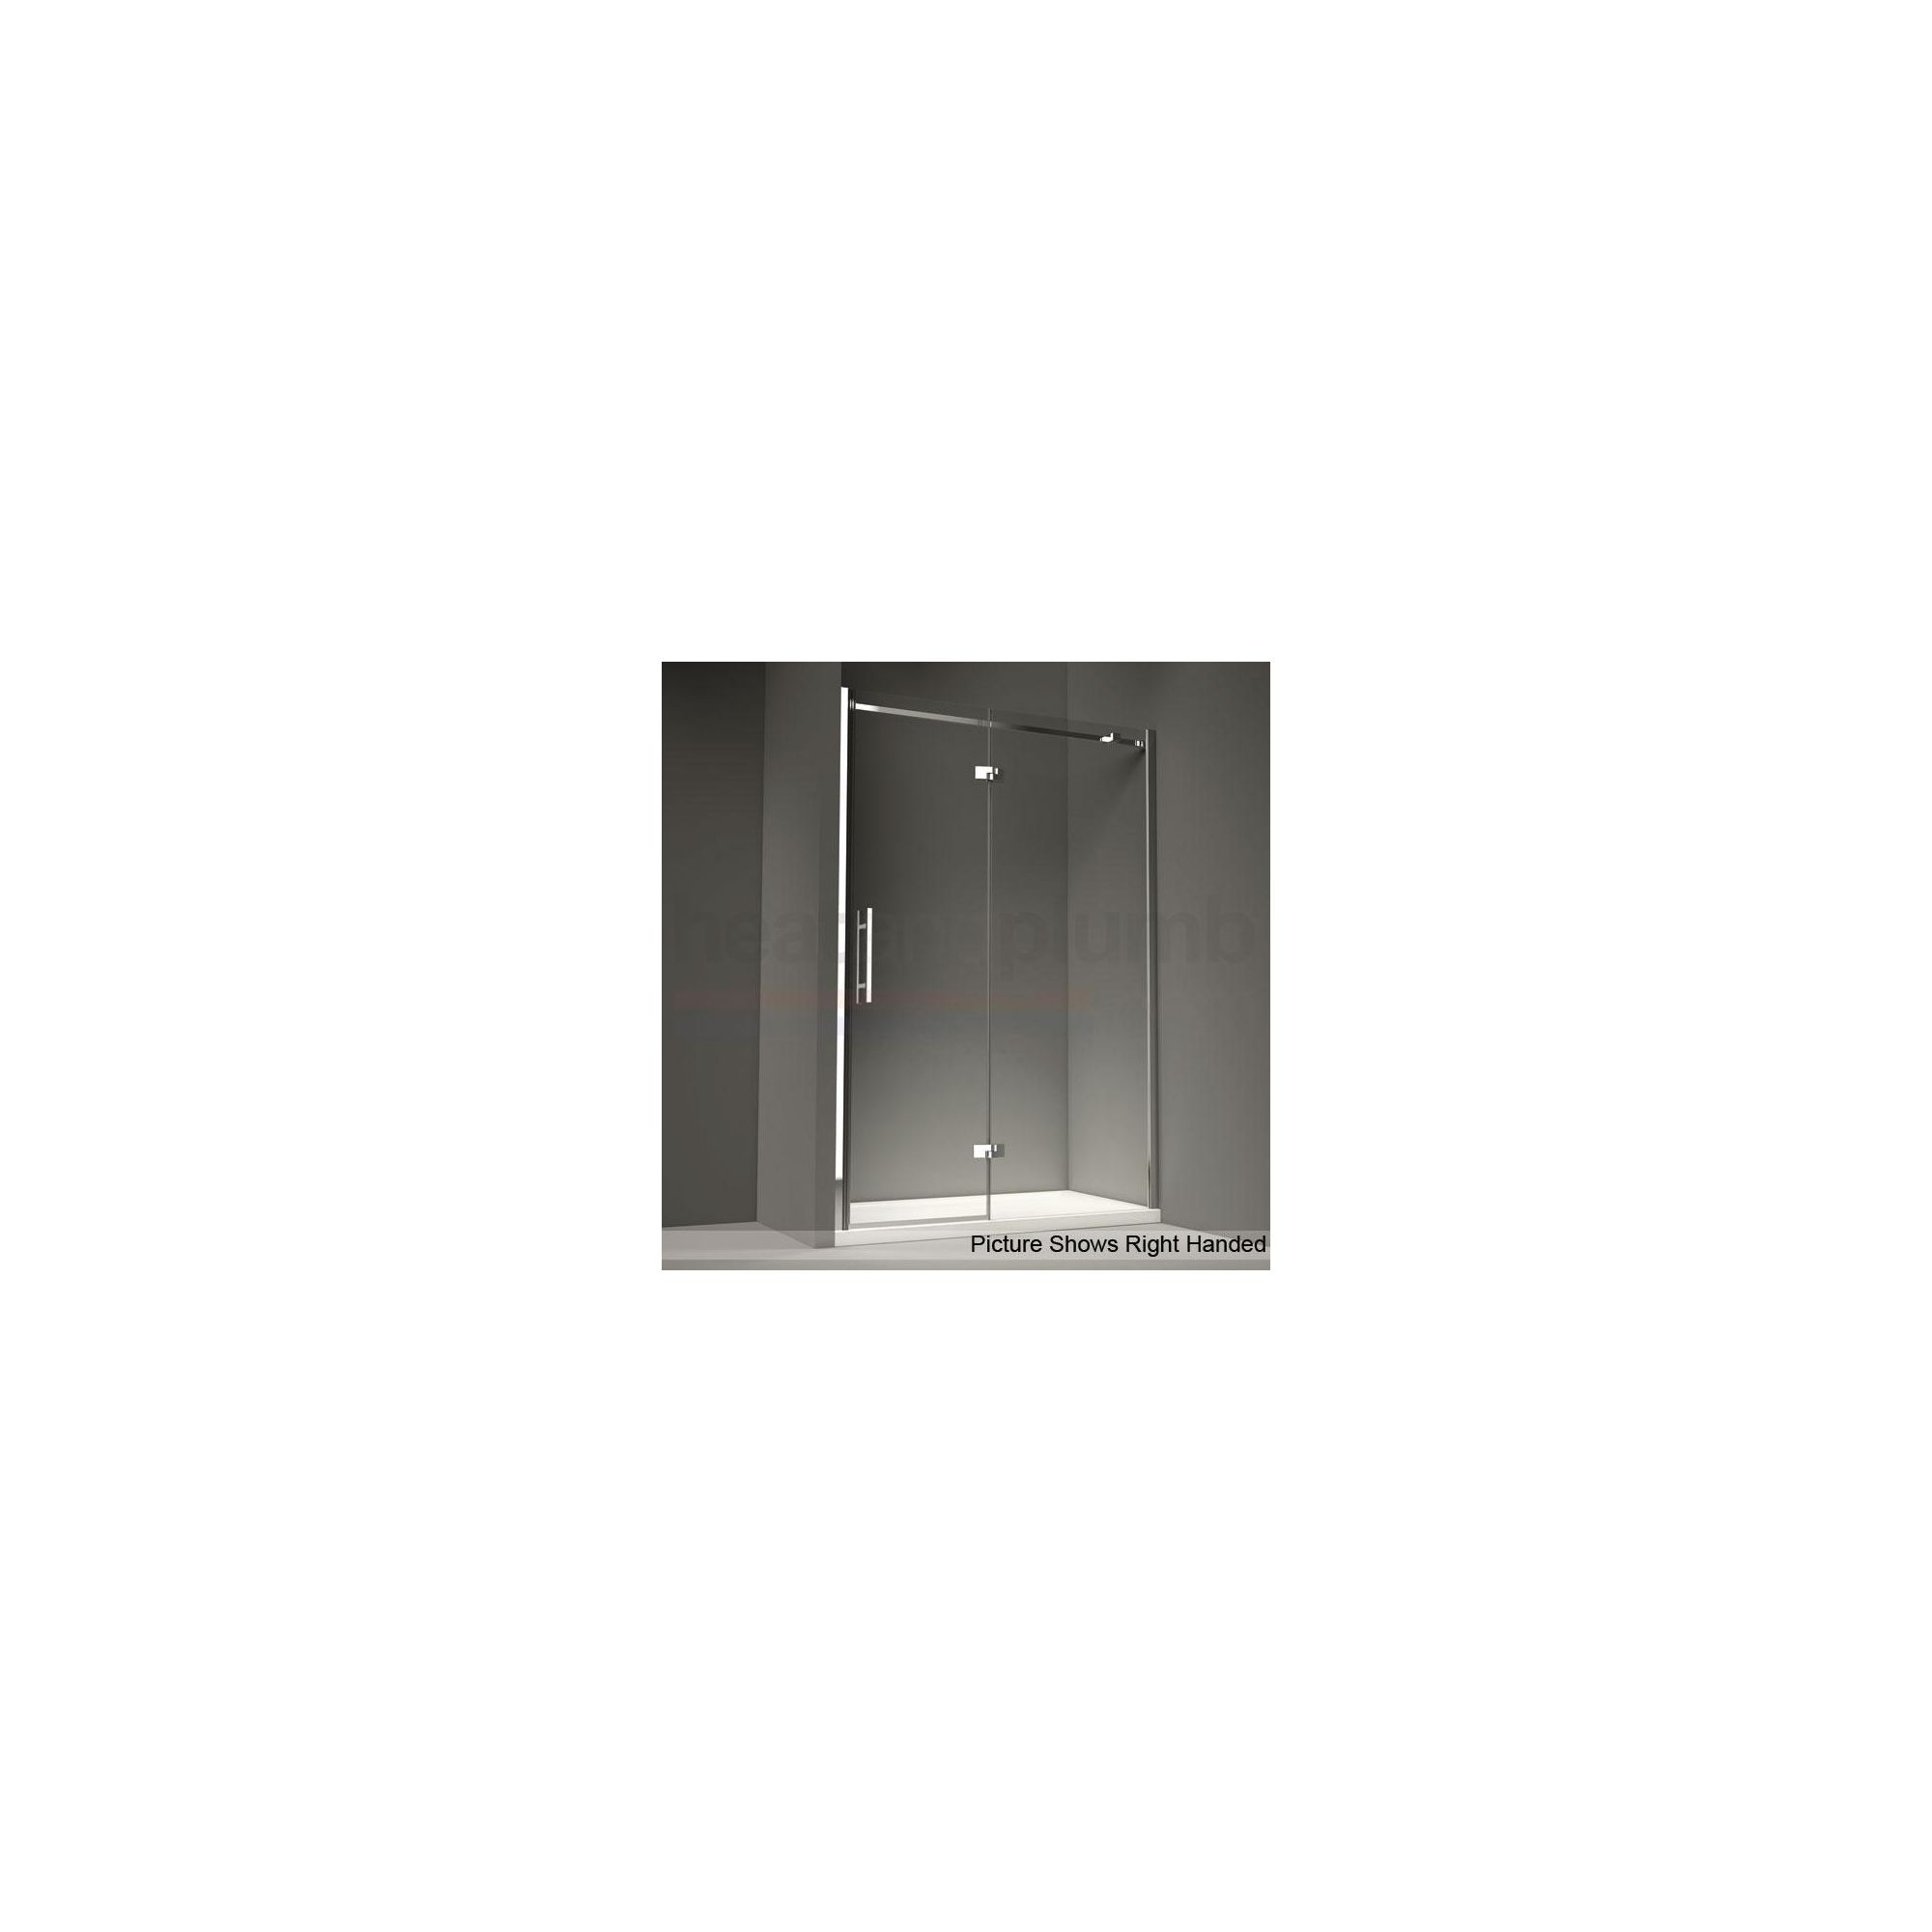 Merlyn Series 9 Inline Hinged Door ALCOVE Shower Enclosure 1200mm x 800mm (Complete with Tray) - 8mm Glass at Tesco Direct